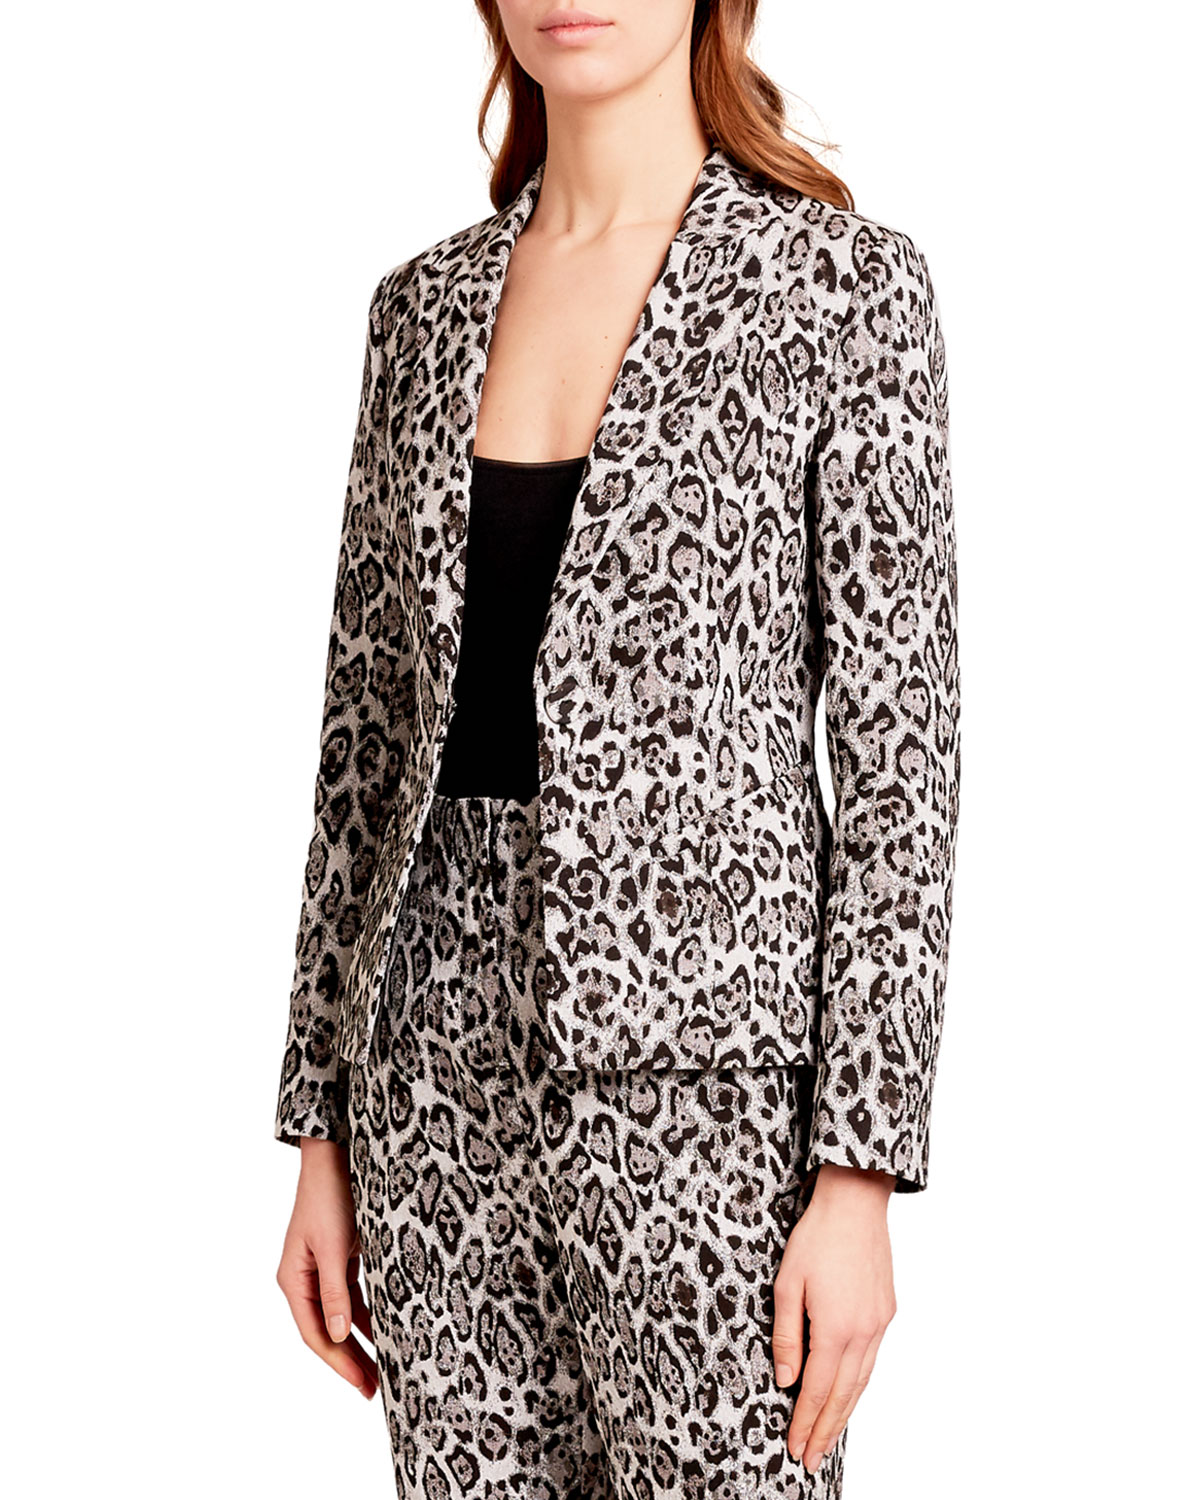 Erdem Iris Single-Breasted Leopard-Print Blazer